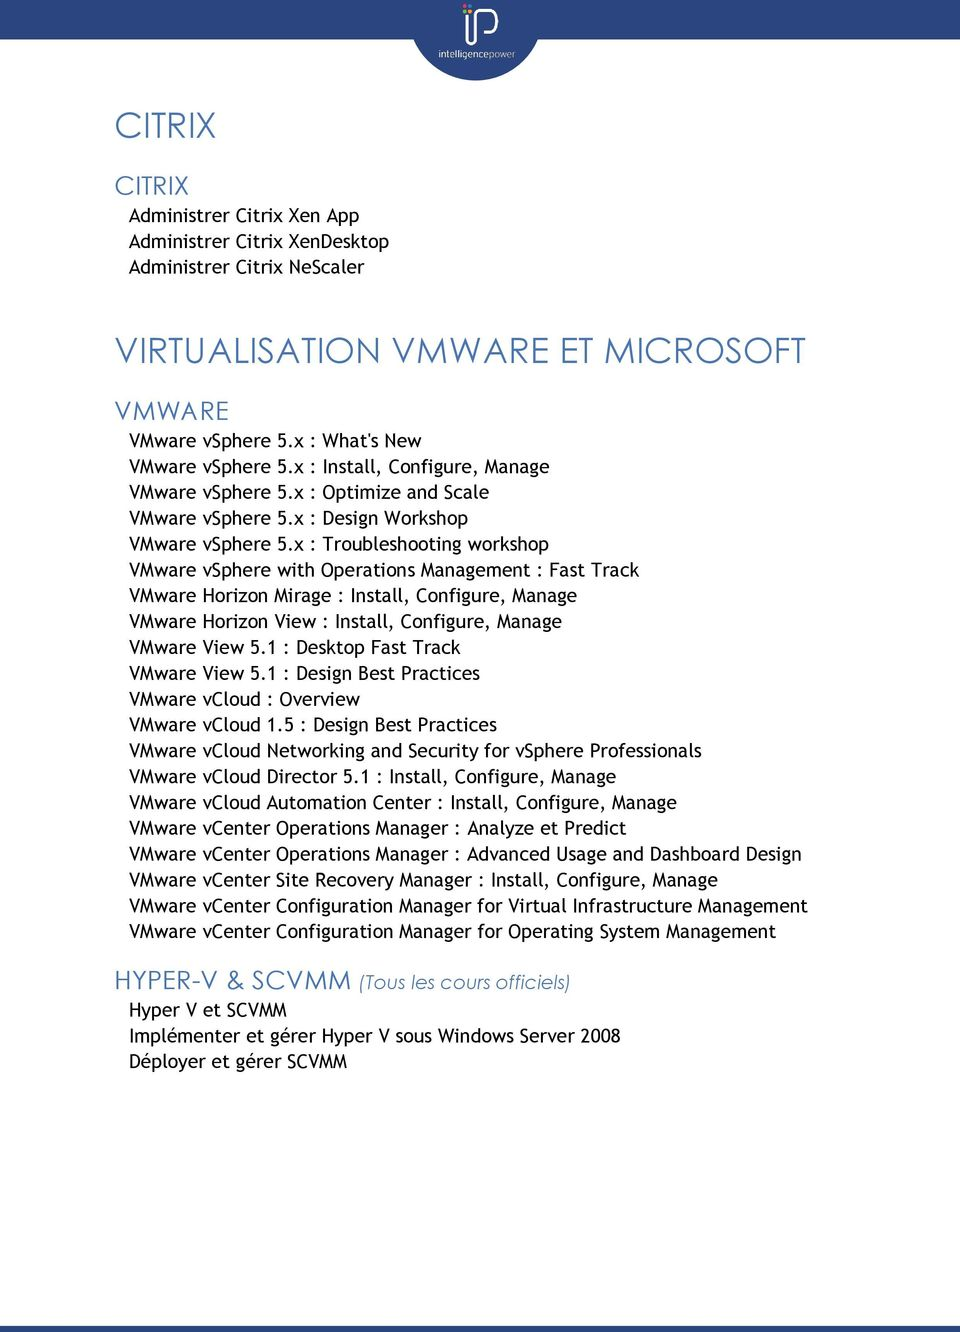 x : Troubleshooting workshop VMware vsphere with Operations Management : Fast Track VMware Horizon Mirage : Install, Configure, Manage VMware Horizon View : Install, Configure, Manage VMware View 5.